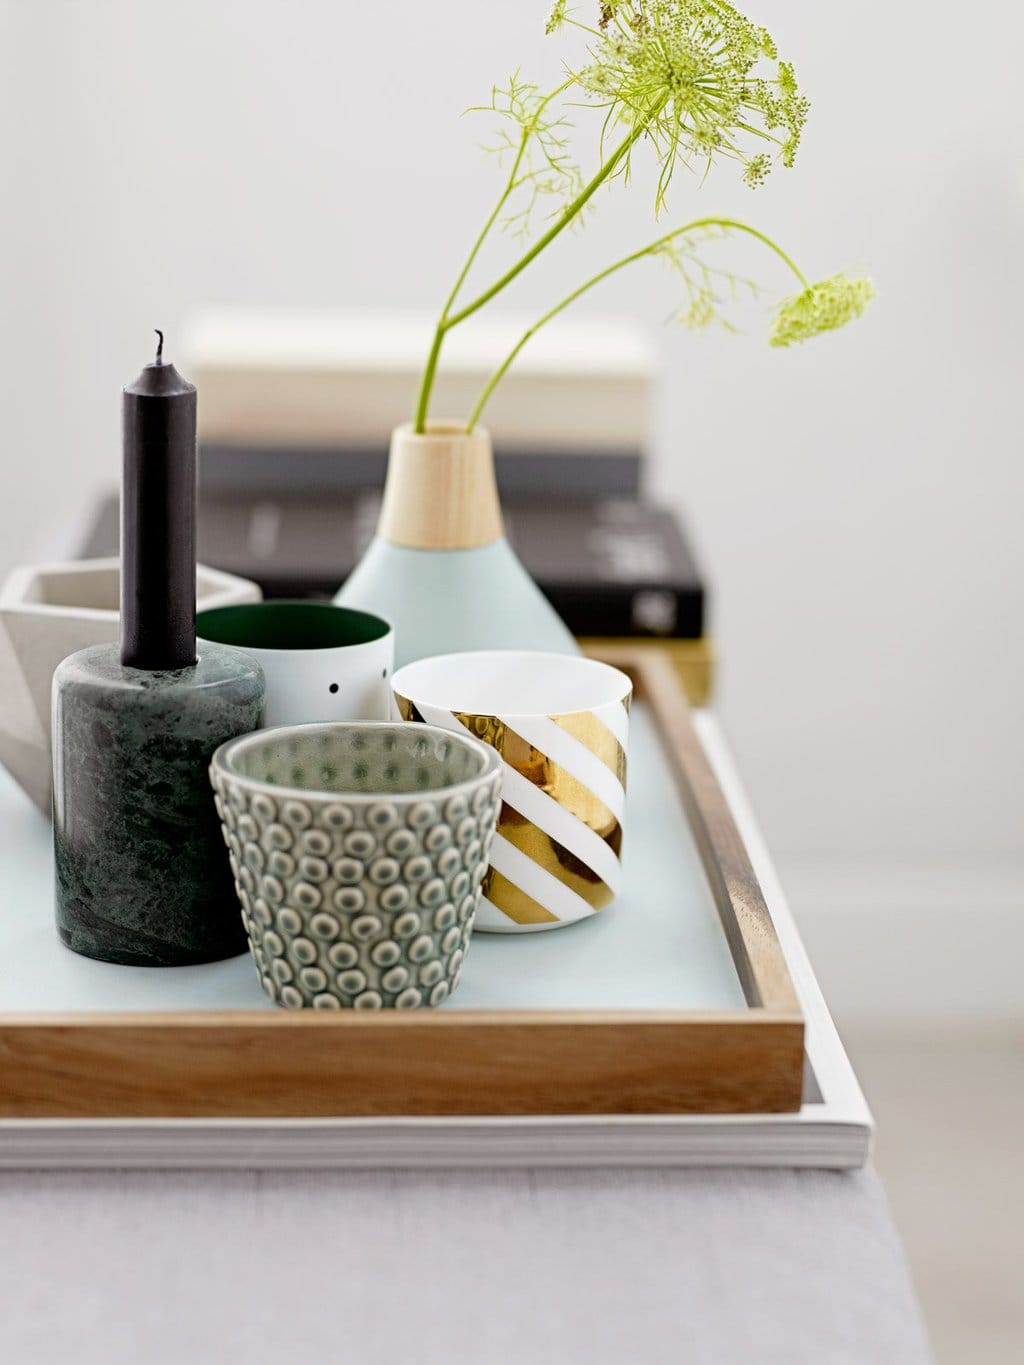 Bloomingville Nordic decor and vases on @thouswellblog